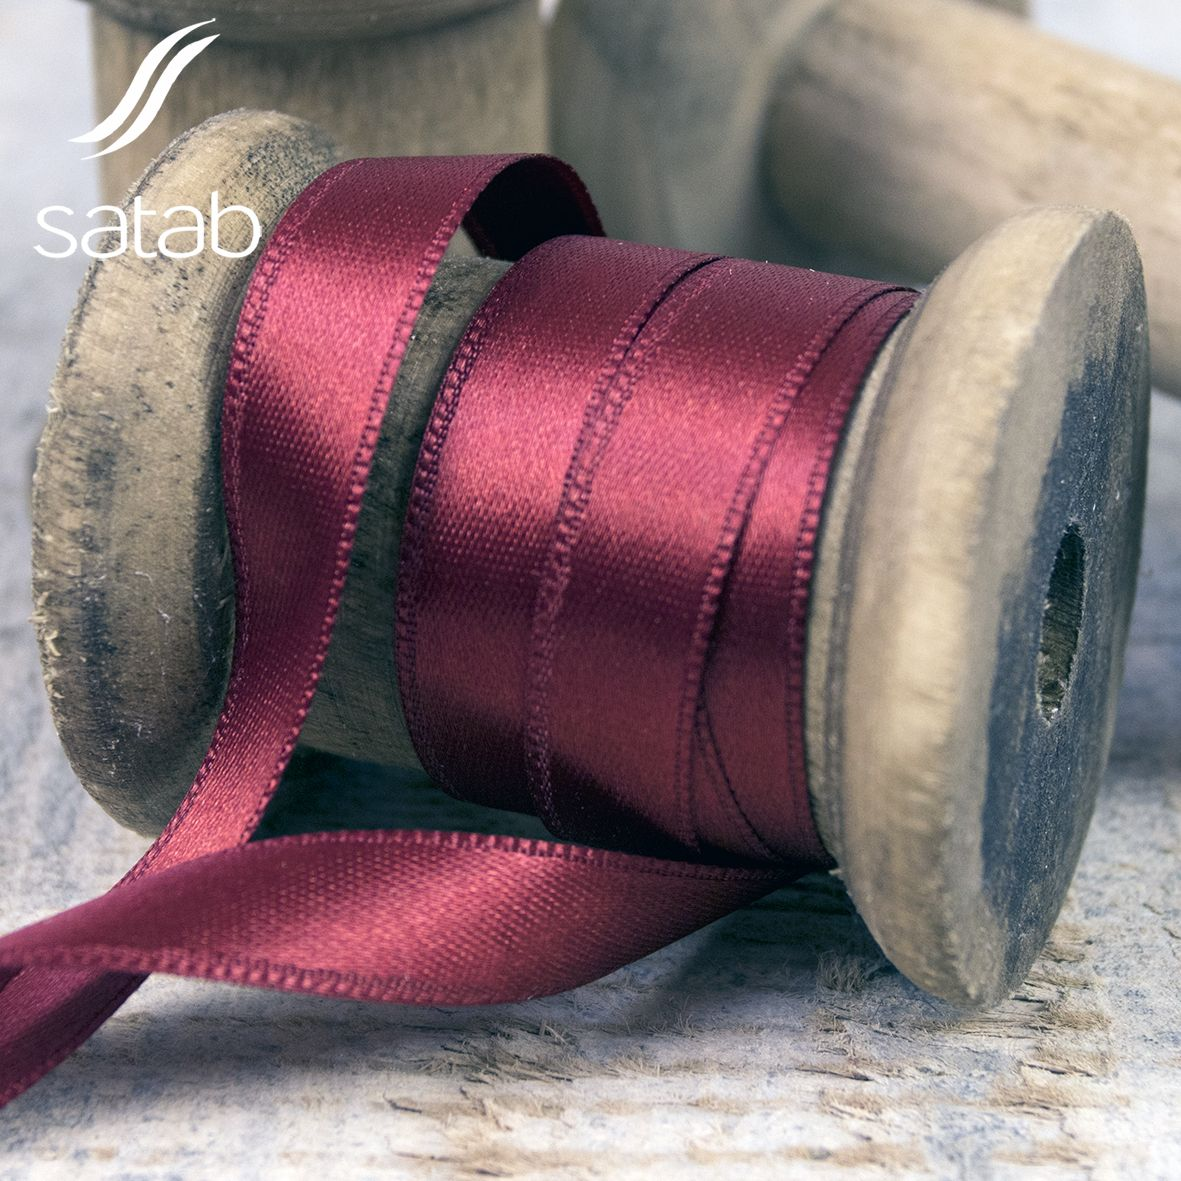 Satab Satin Ribbon category image